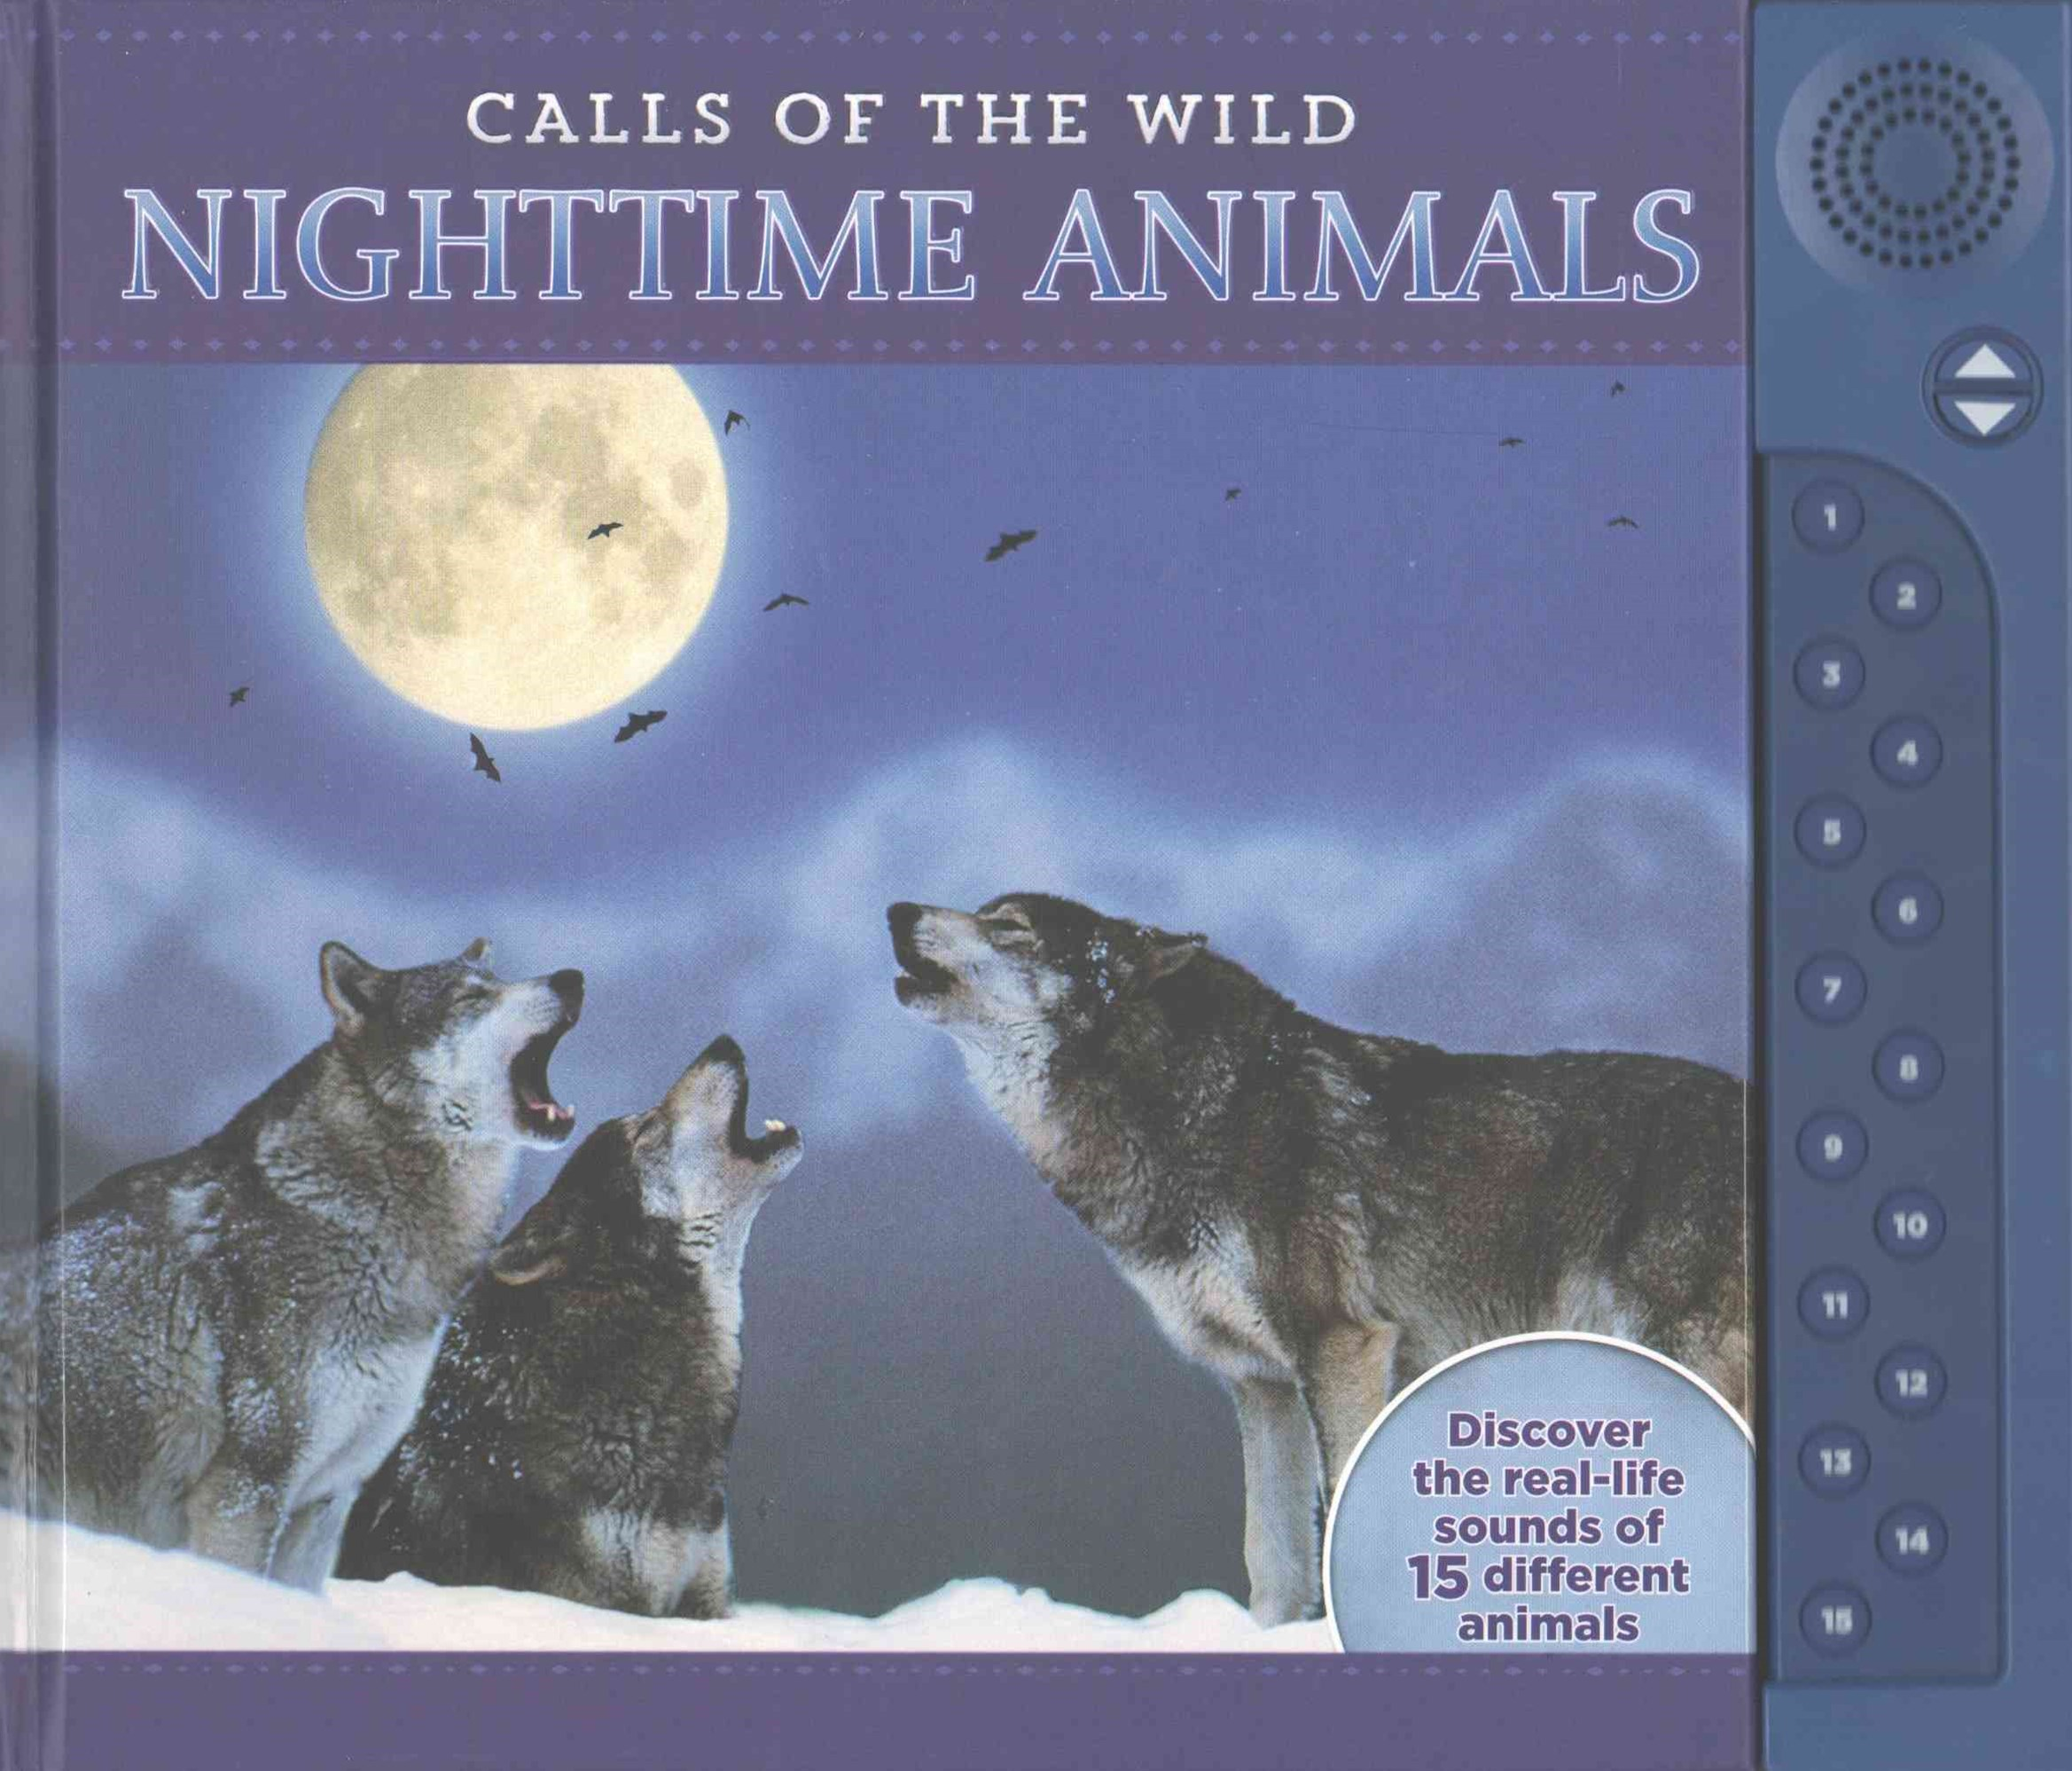 Calls of the Wild: Nighttime Animals